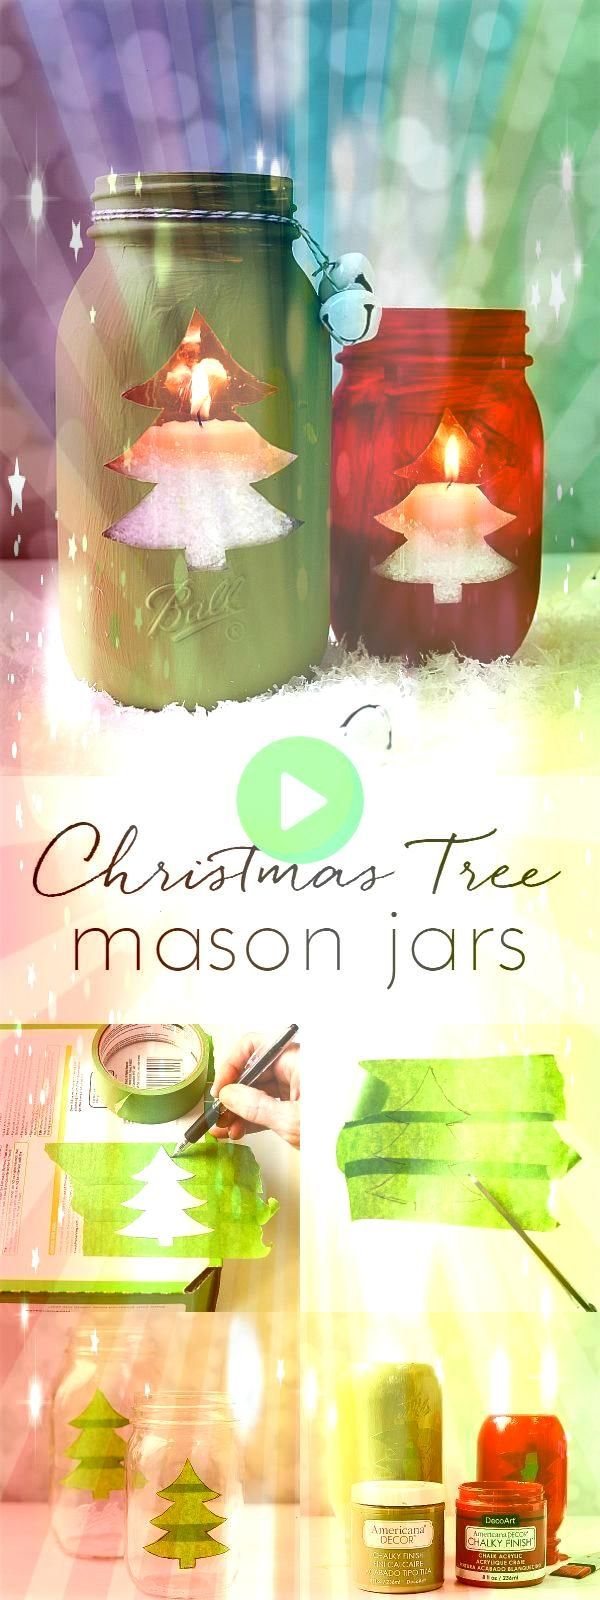 Jar Christmas Tree Vocal Jar Christmas TreeVocal Jar Christmas Tree Rule your next cookie swap with these totally unique and irresistibly yummy holiday macaroons featurin...